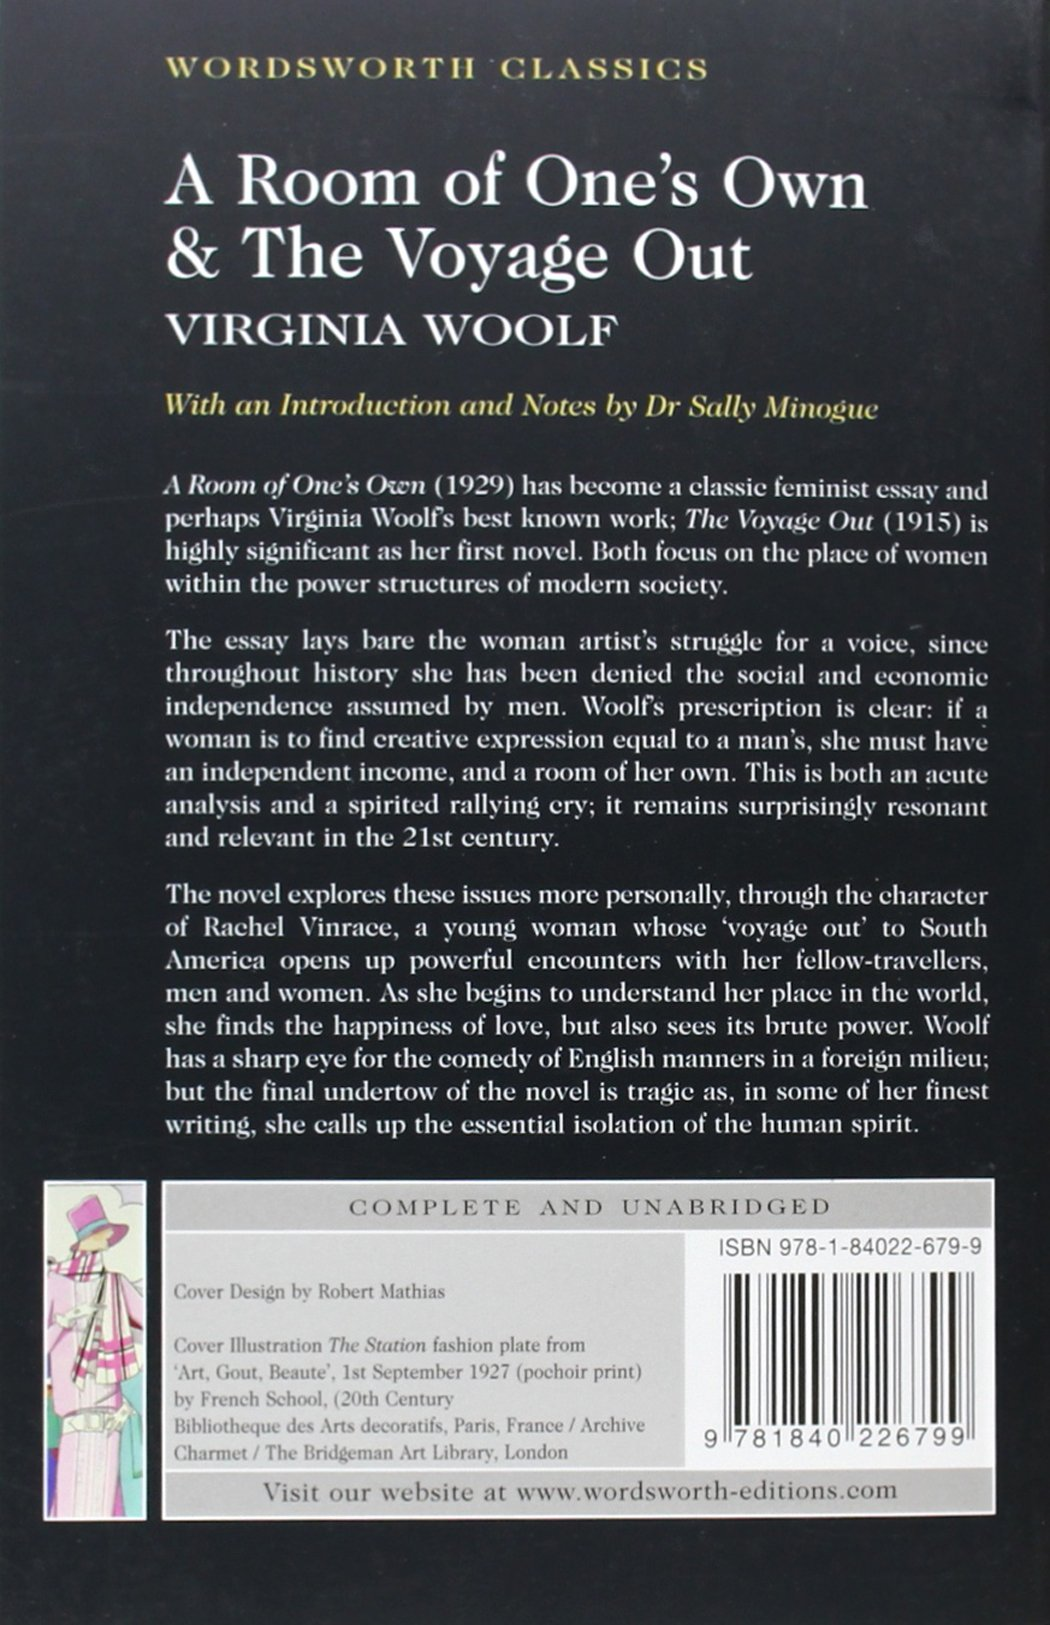 a room of one s own the voyage out wordsworth classics  a room of one s own the voyage out wordsworth classics co uk virginia woolf dr sally minogue dr keith carabine 0884717944464 books